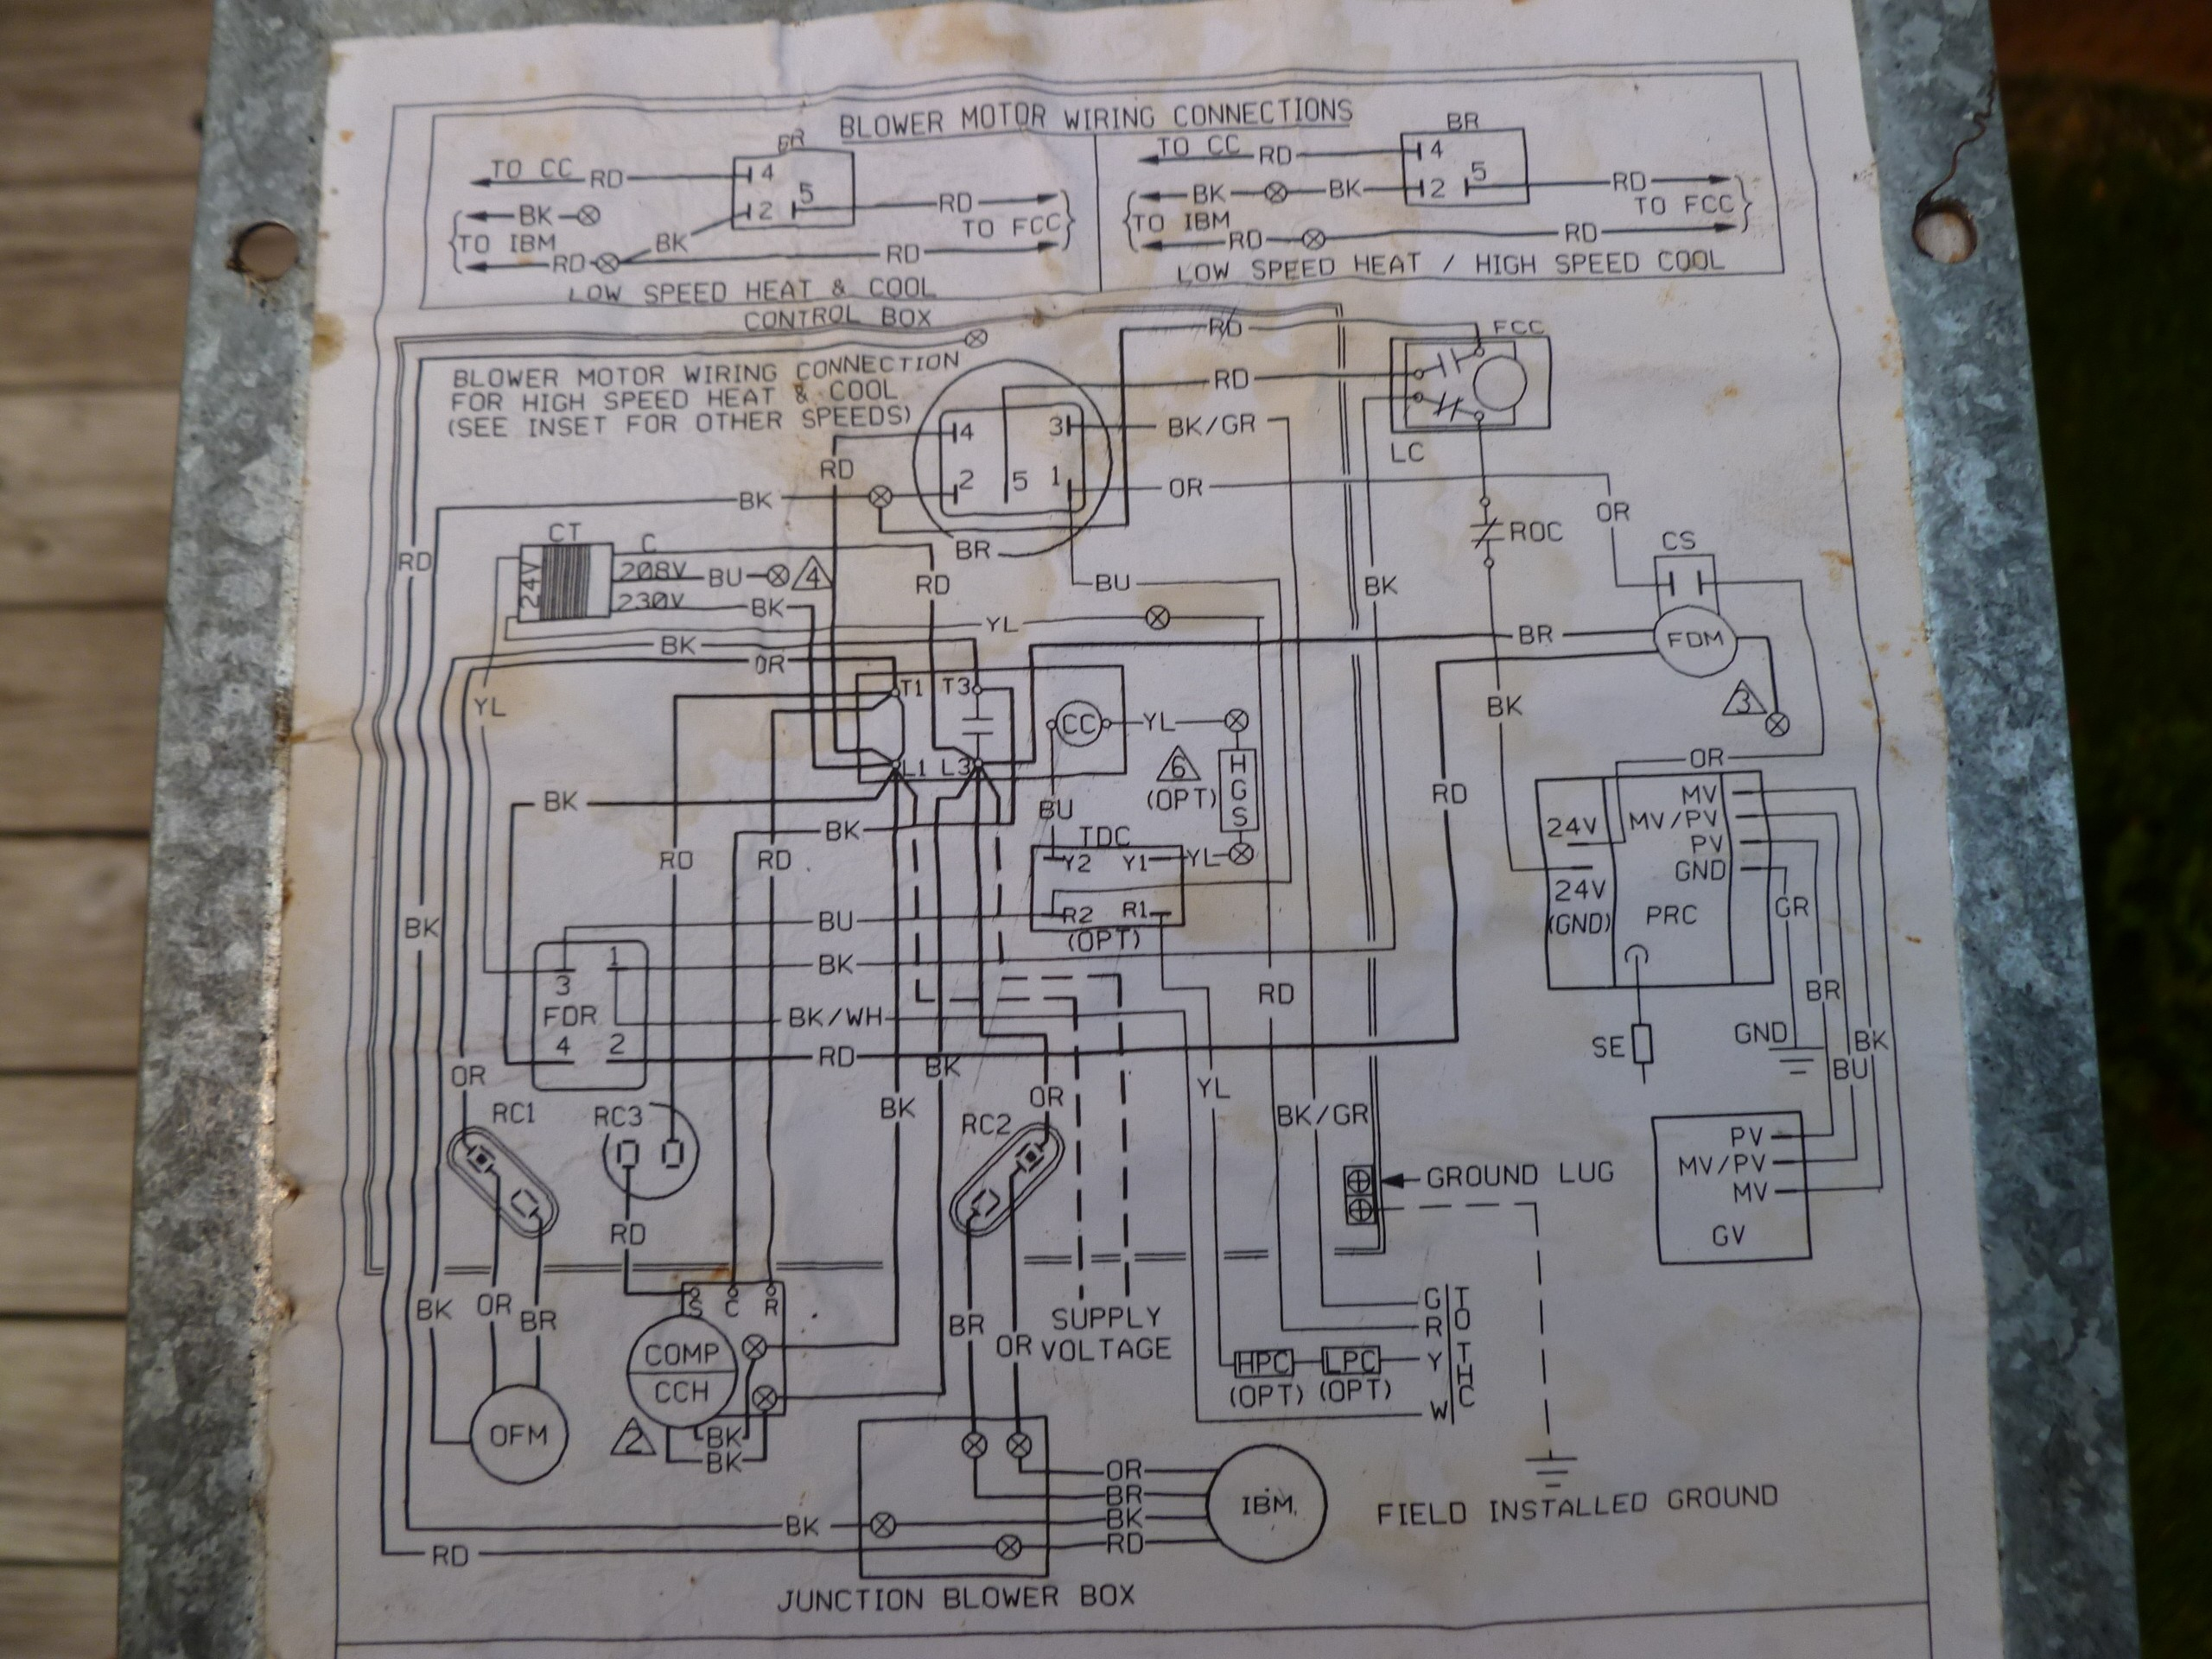 rheem rhllhm3617ja wiring diagram - wiring diagram goodman package unit wiring diagram oil package unit wiring diagram